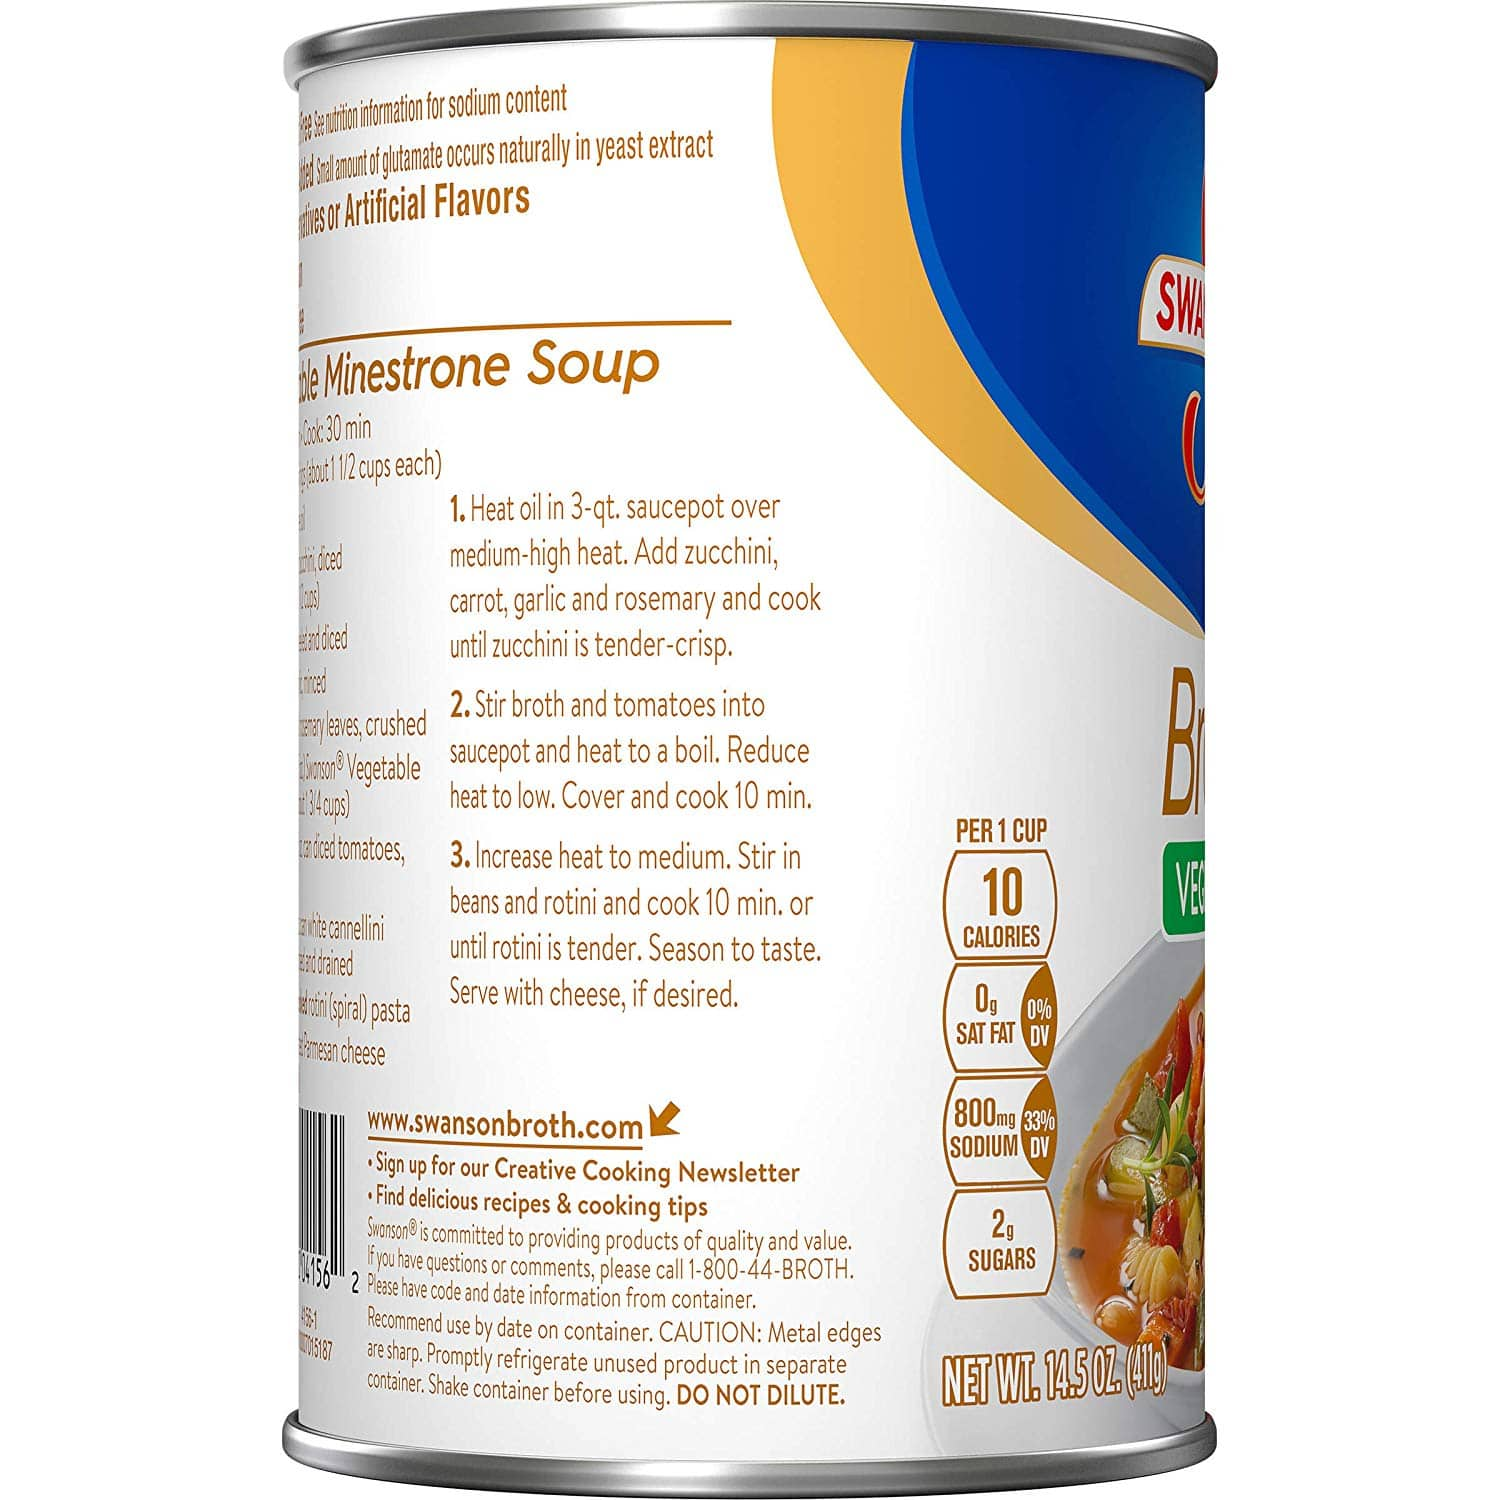 Amazon has Swanson Vegetable Broth, 14.5 oz. Can for 94 cents w/ Subscribe & Save + Free S&H as low as 84 cents with 5+ S&S items - Good S&S Filler item $0.94